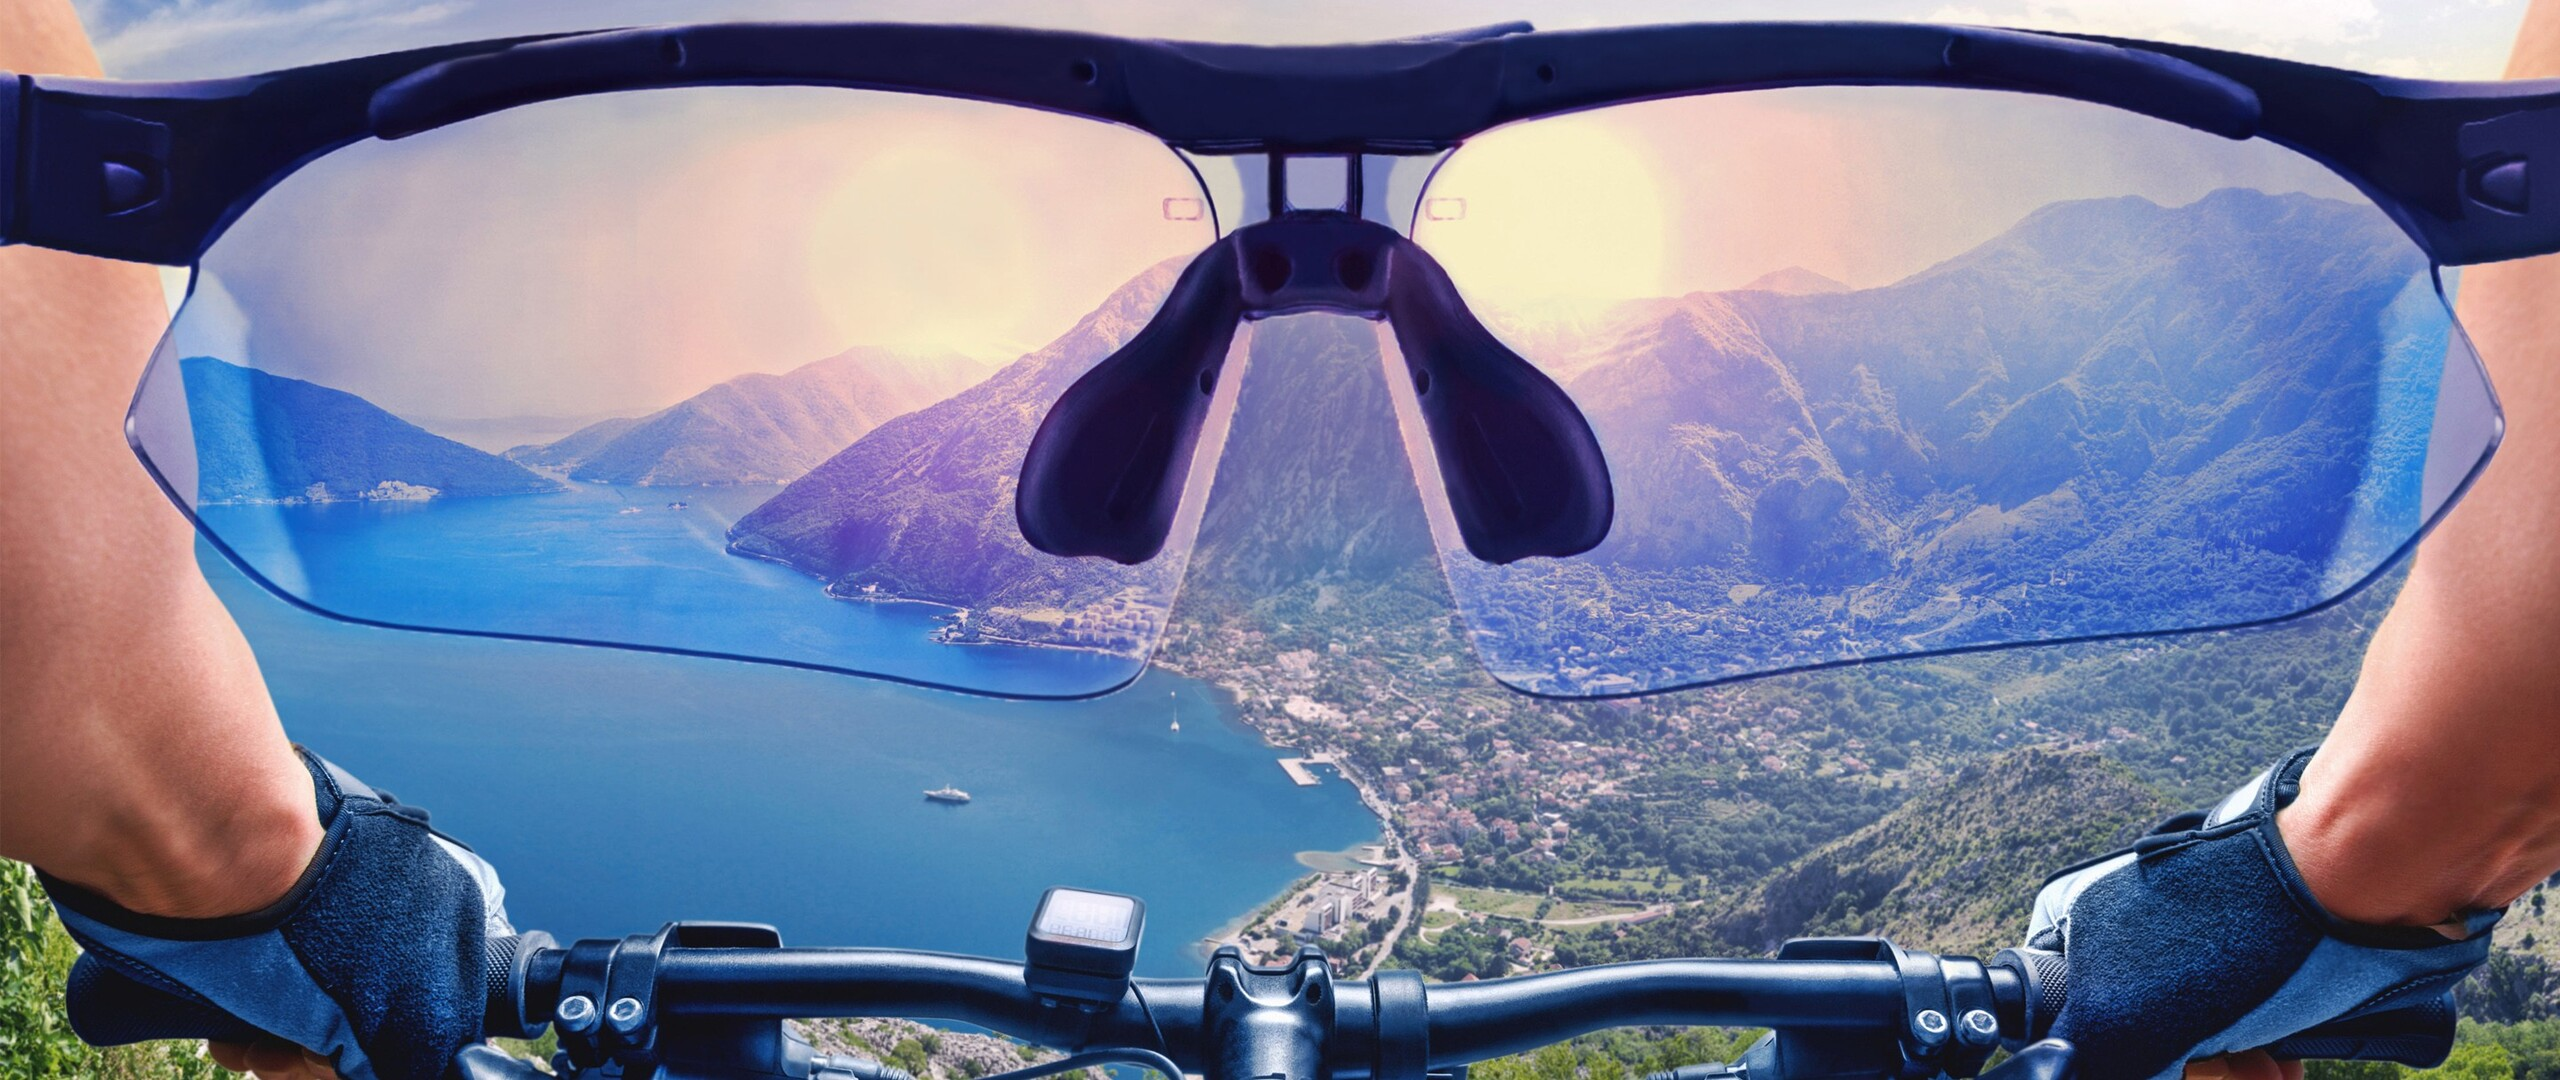 mountain-view-on-bicycle.jpg